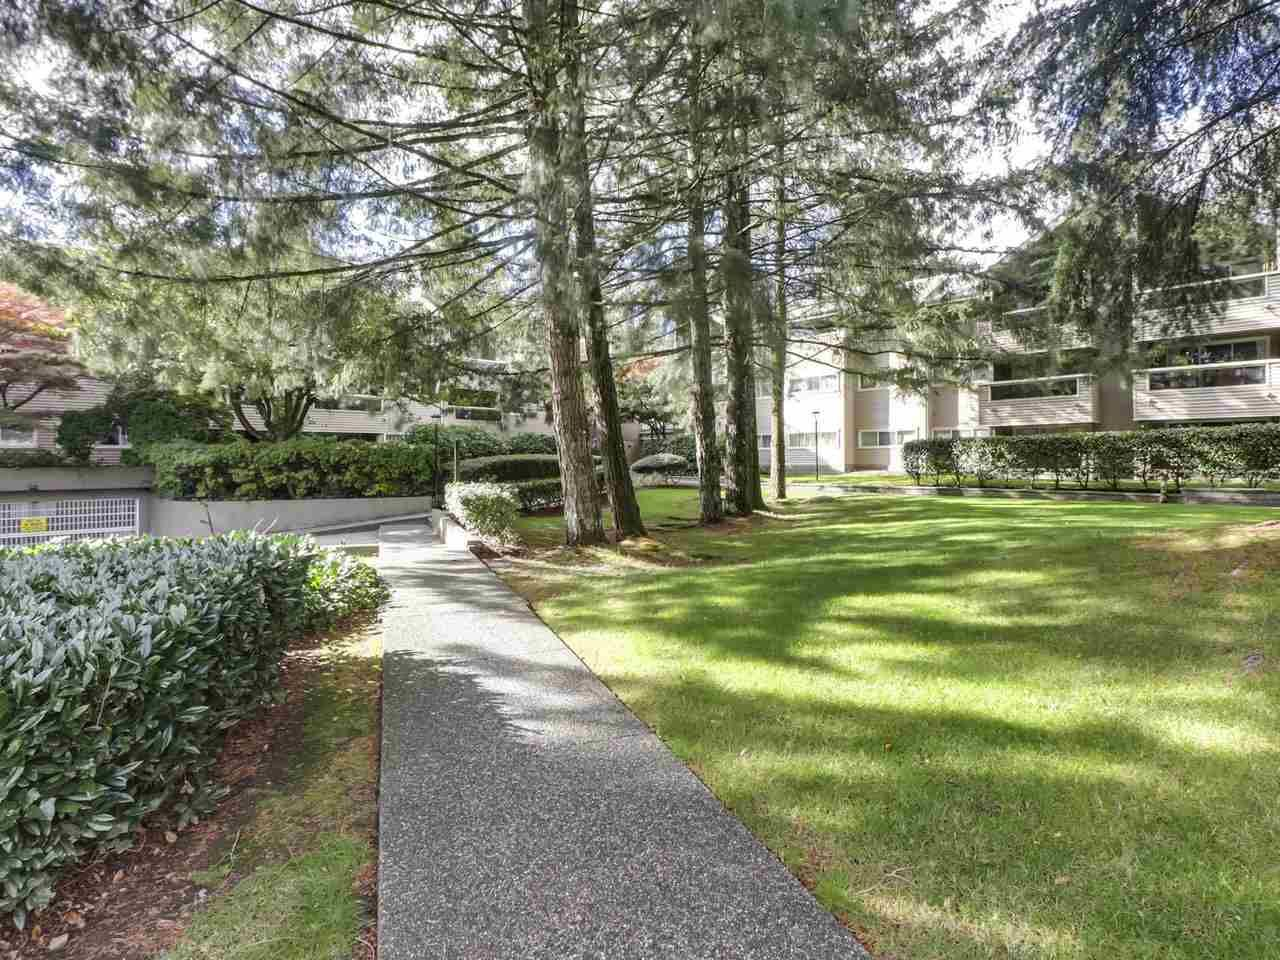 """Main Photo: 110 932 ROBINSON Street in Coquitlam: Coquitlam West Condo for sale in """"THE SHAUGHNESSY"""" : MLS®# R2511307"""